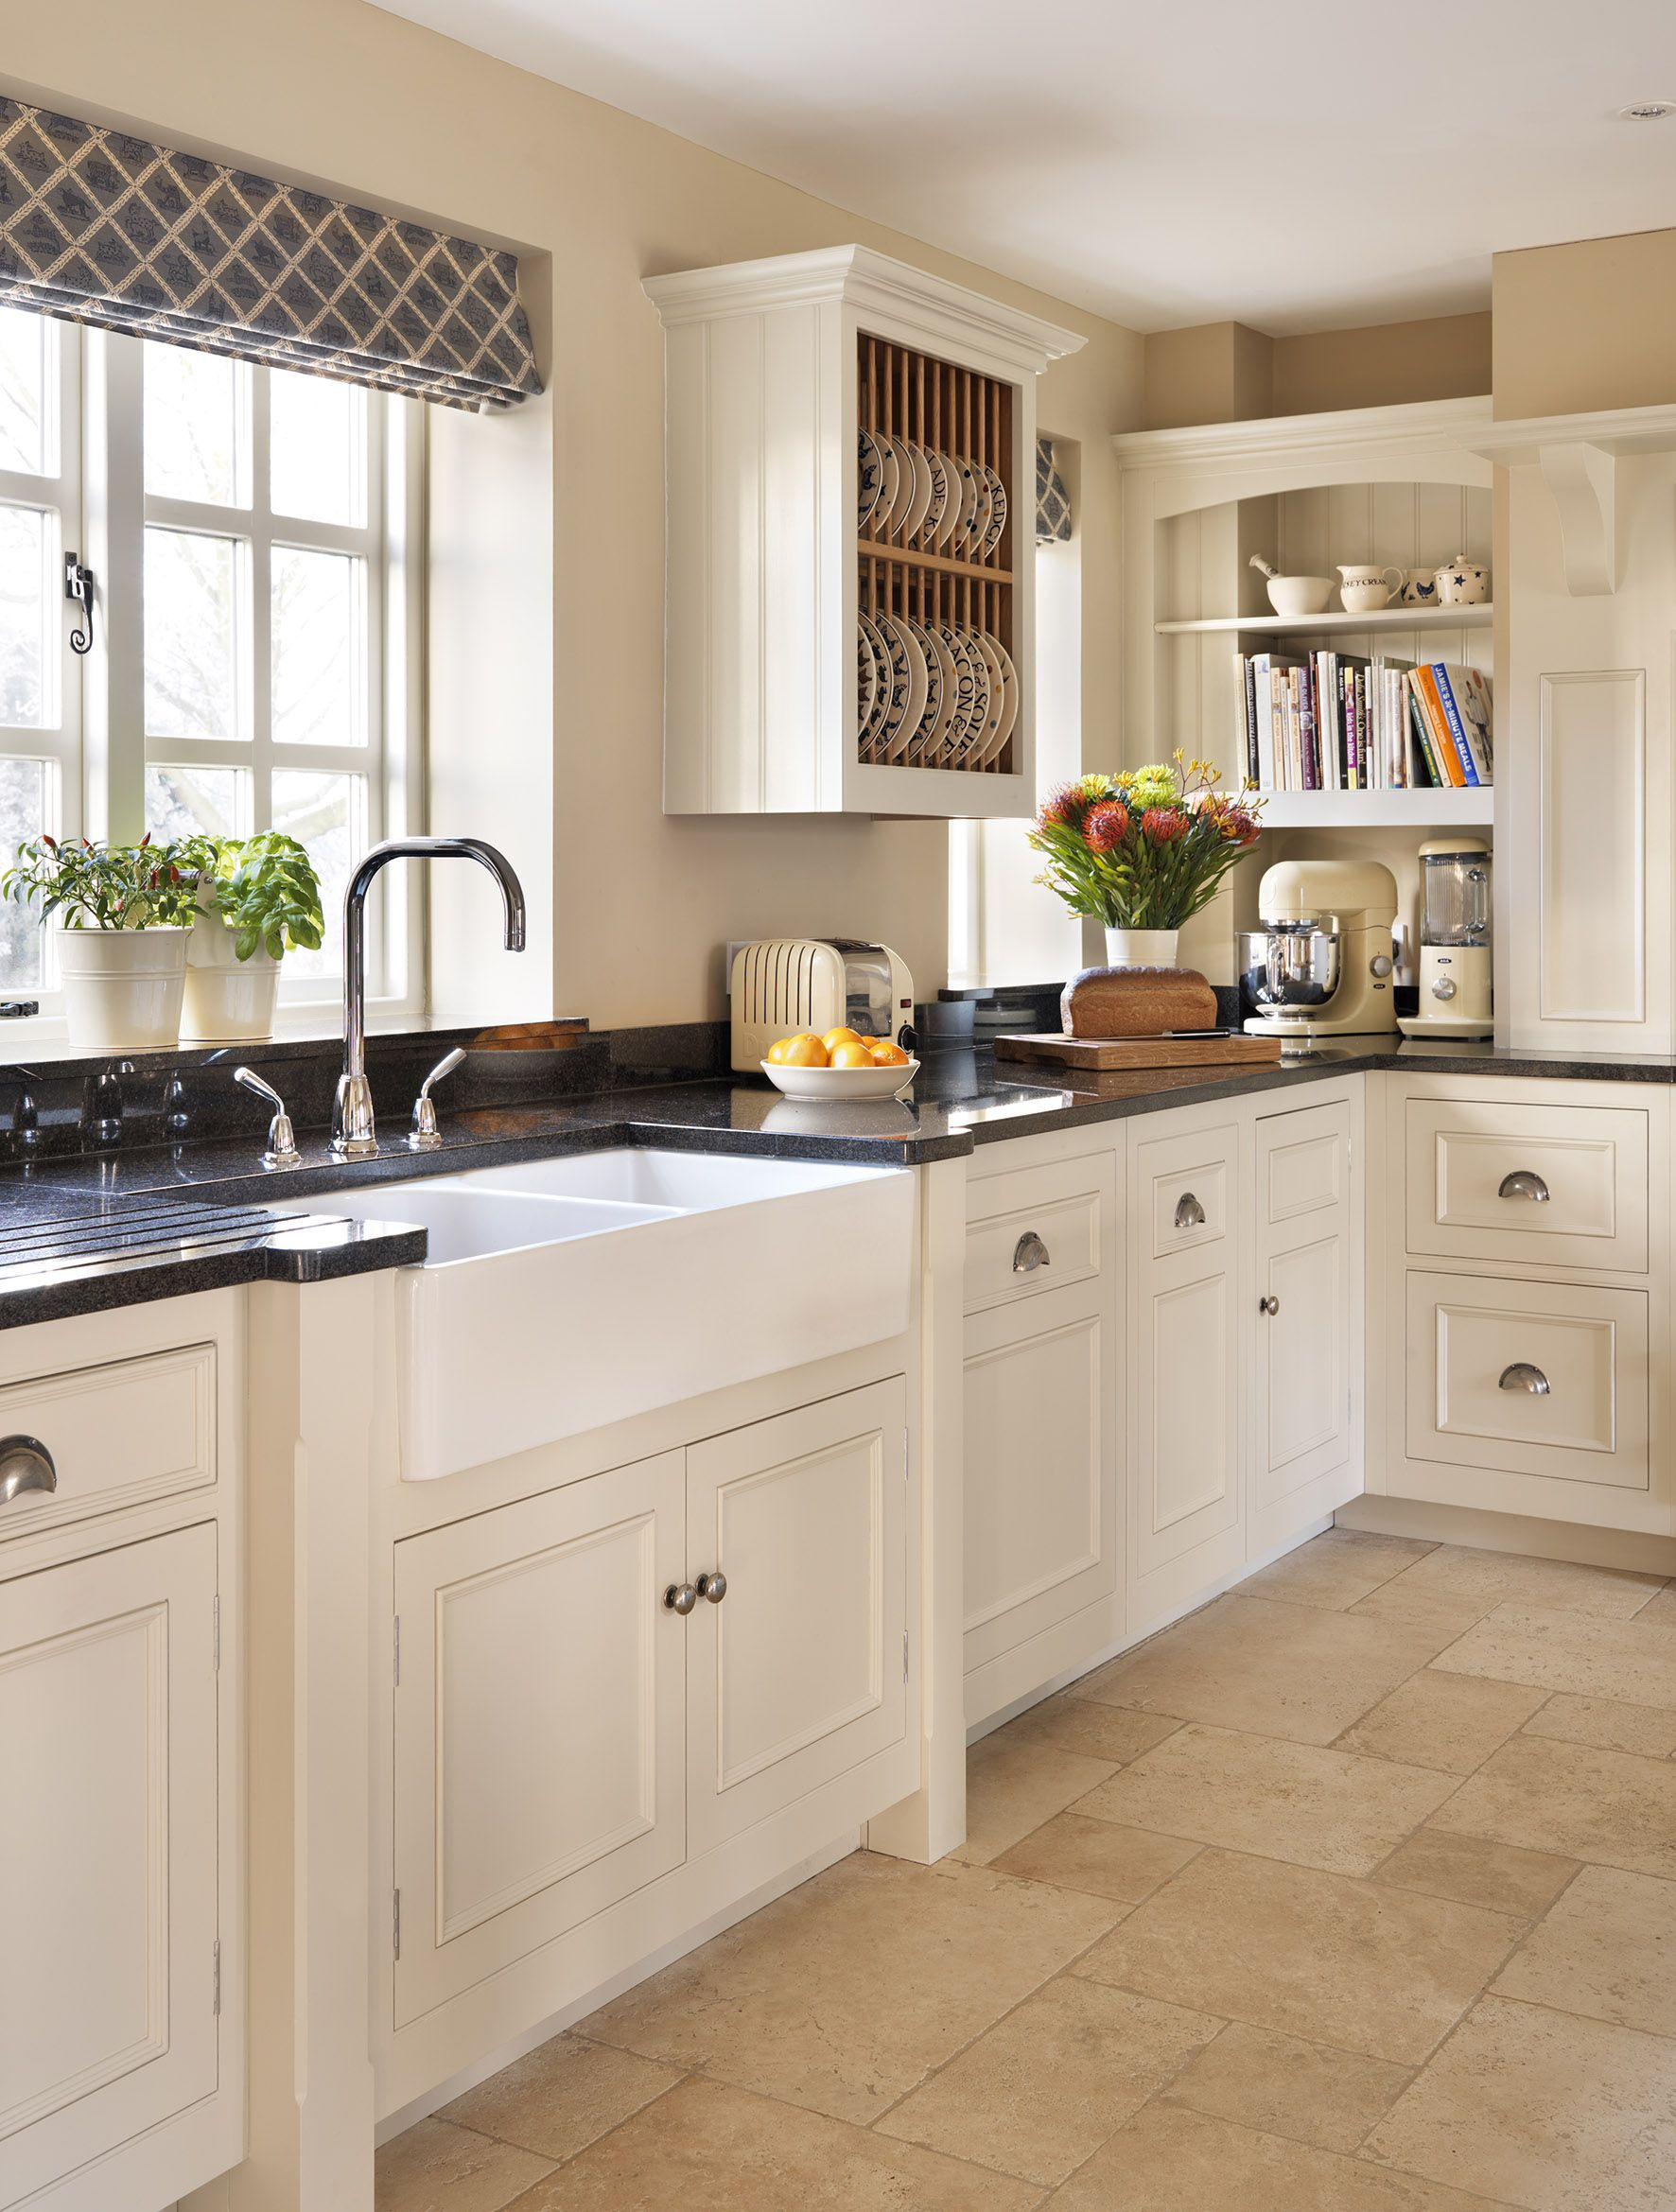 solid wood kitchen worktops - experiences, sources, lengths advice ...